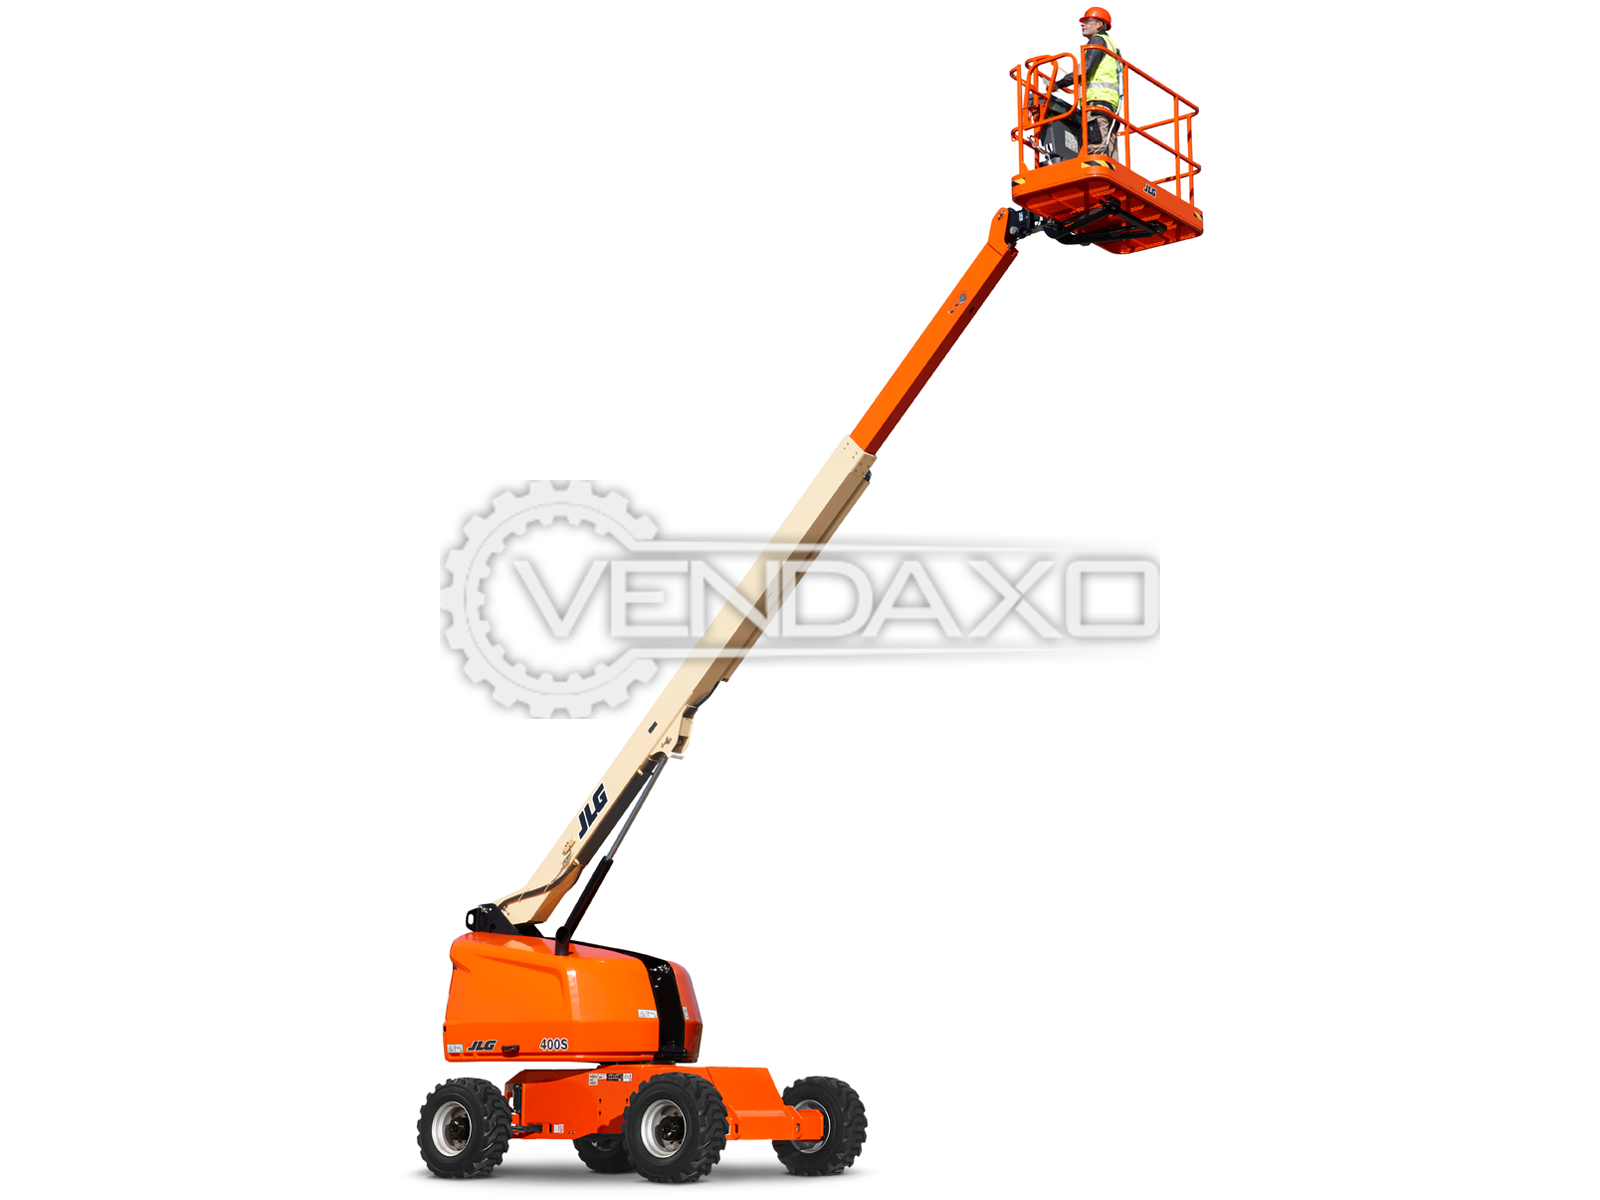 For Sale Used JLG 400S Telescopic Boom Lift  - Height - 40 Feet, 2010 Model